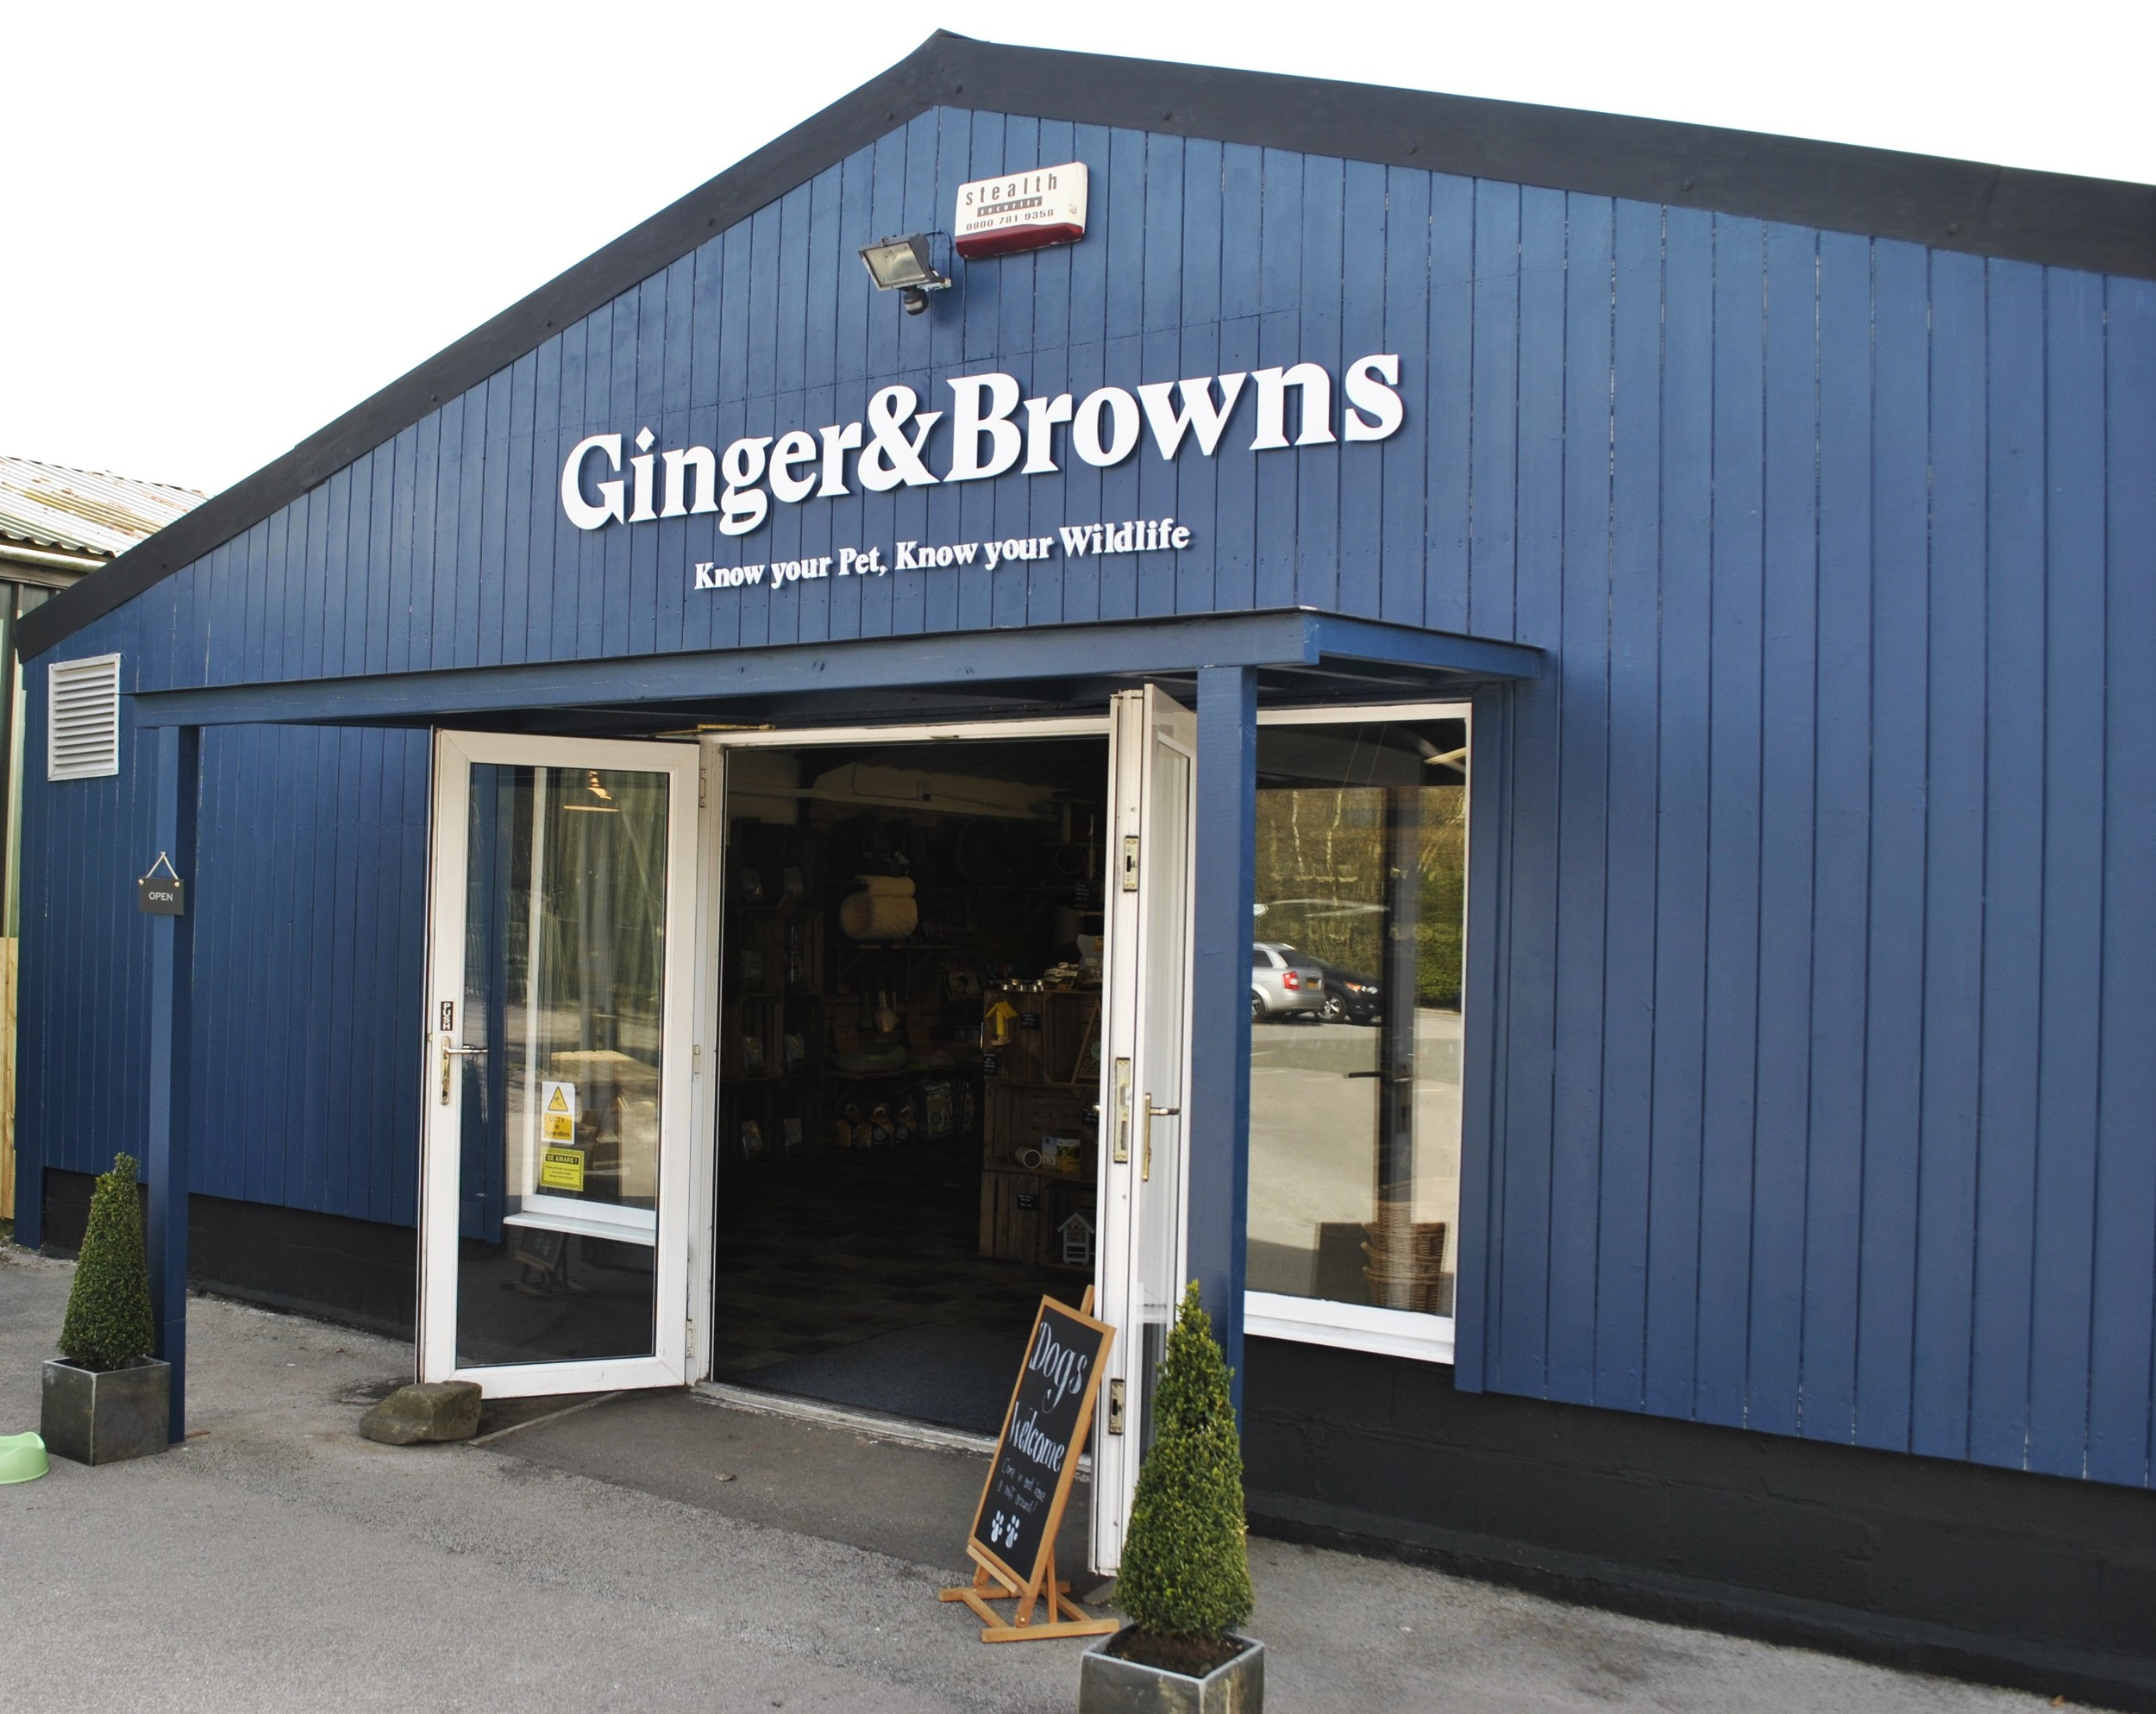 Welcome to Ginger&Browns!